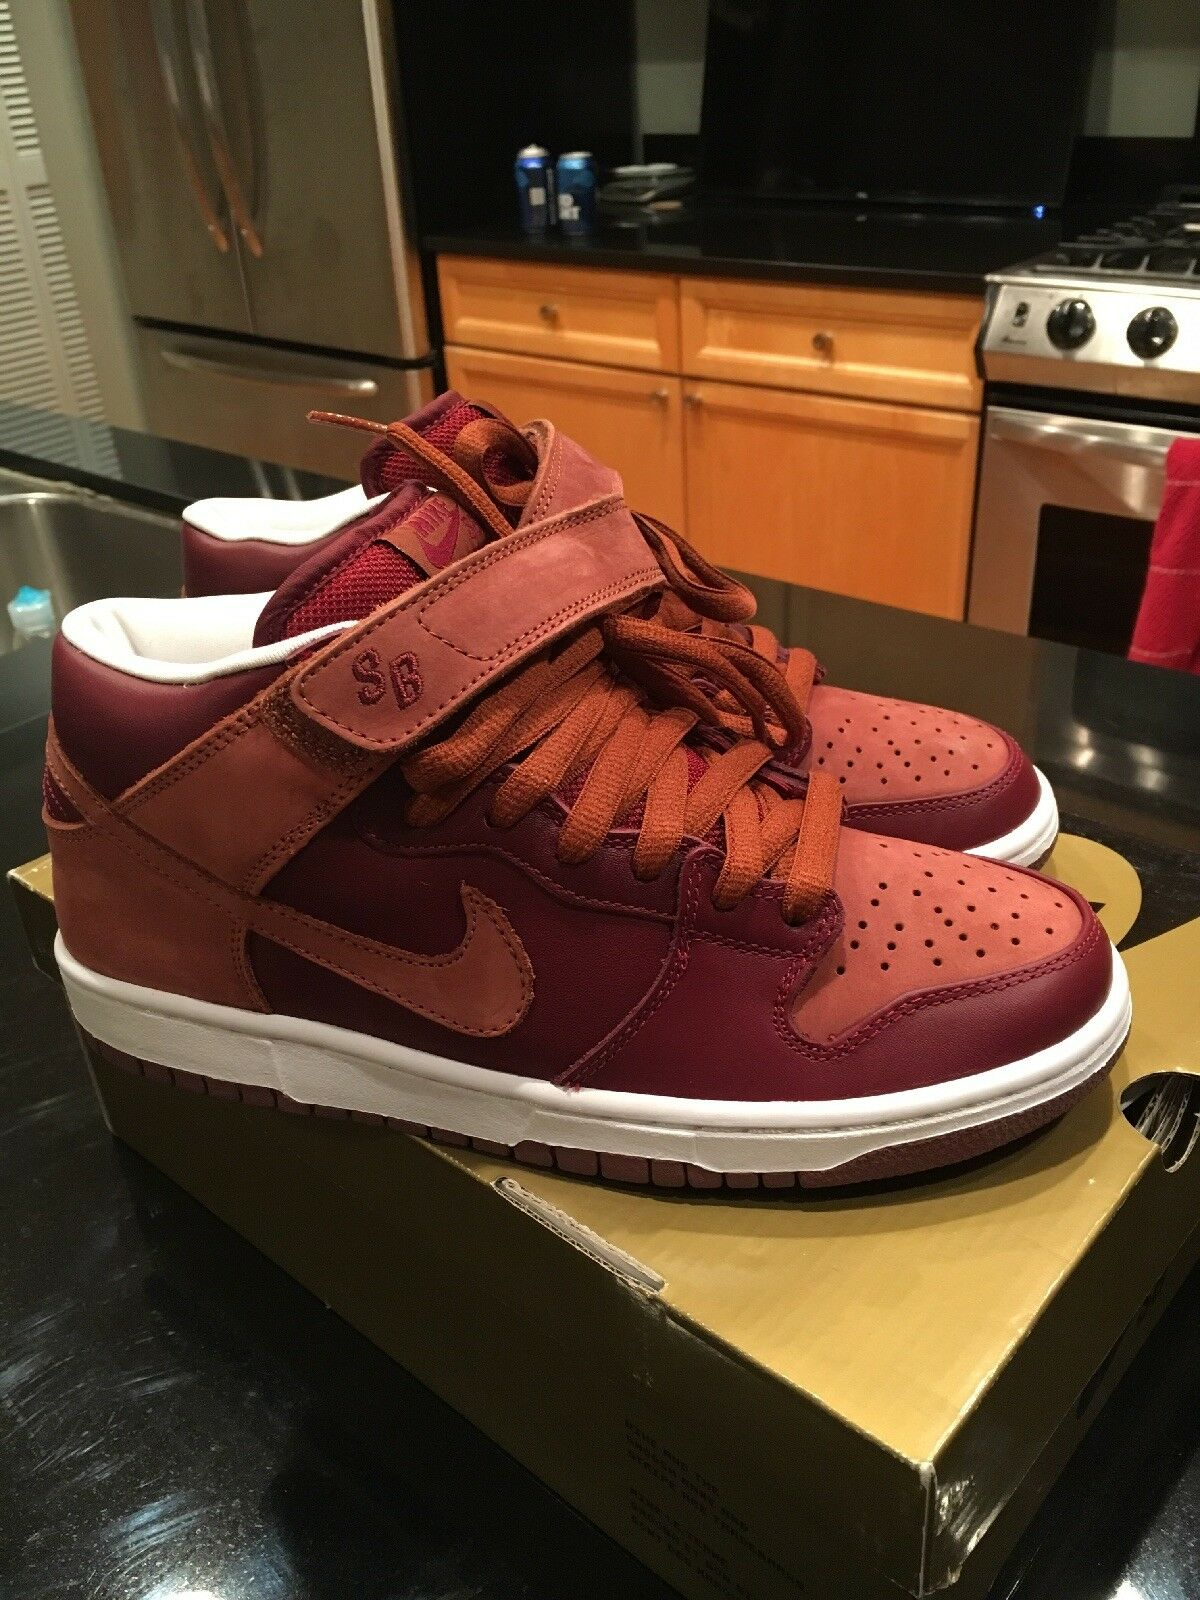 Nike Dunk Mid Pro SB –  Embarco  Team Red  Pony (314383-621) Size  7.5